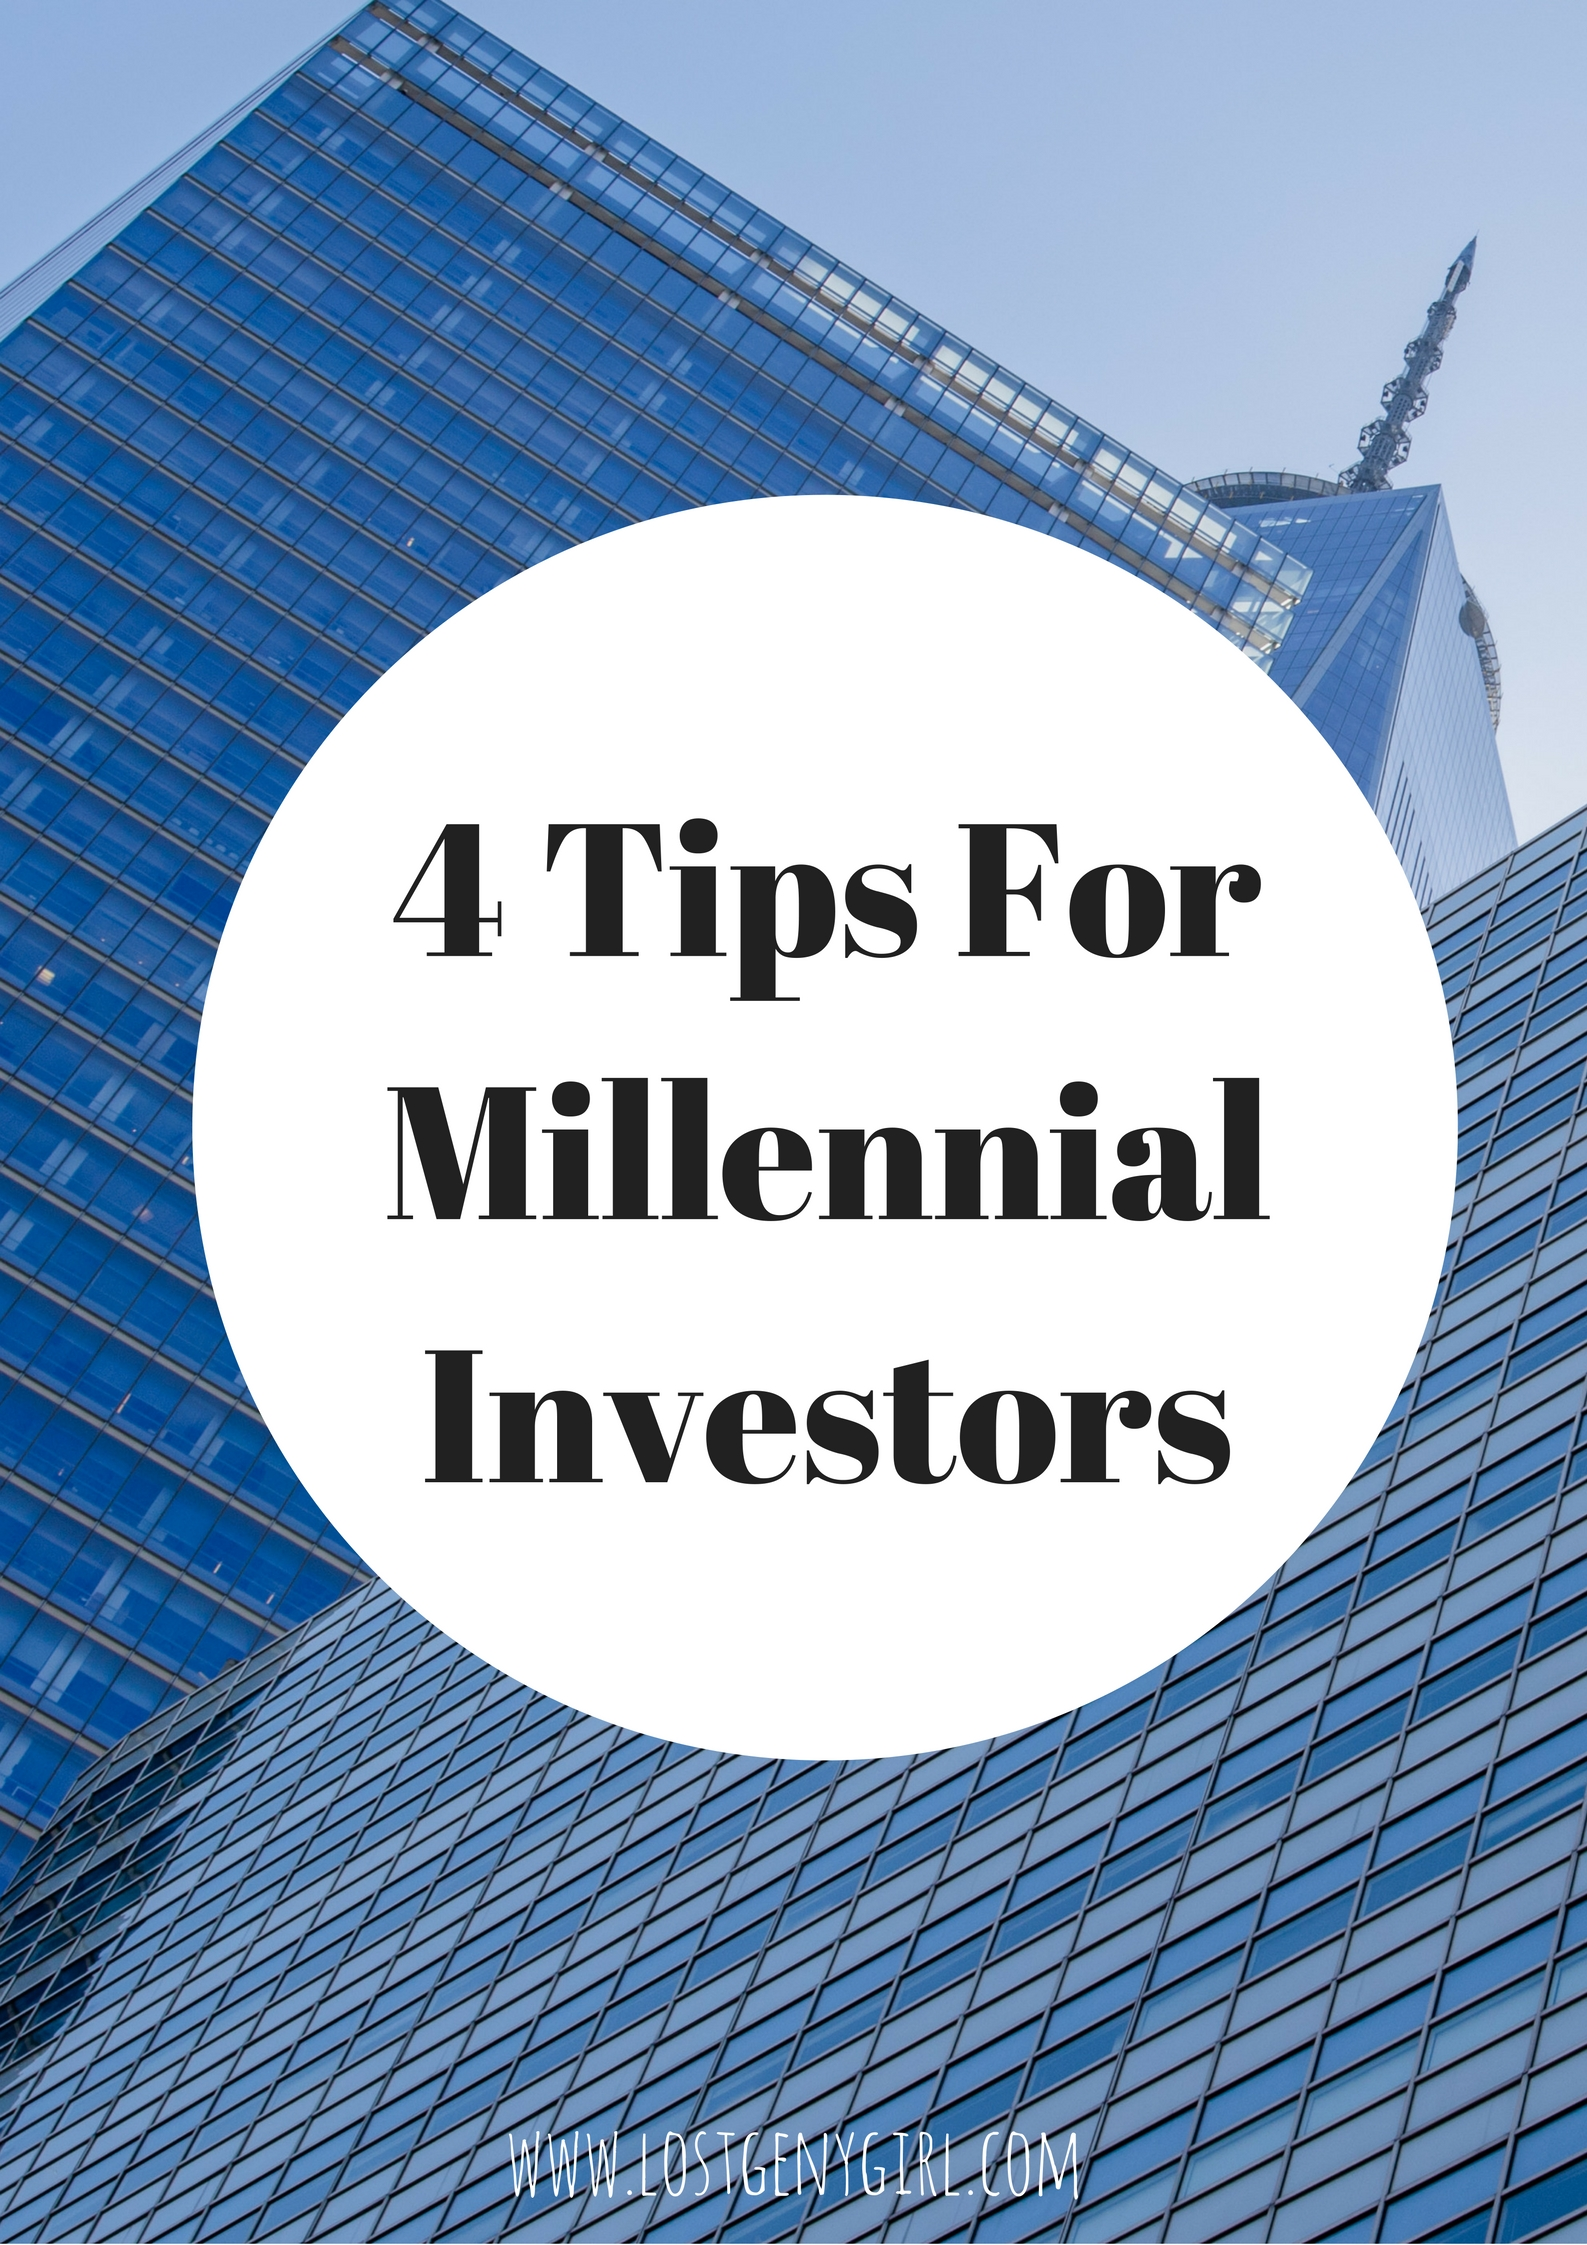 4 Tips For Millennial Investors